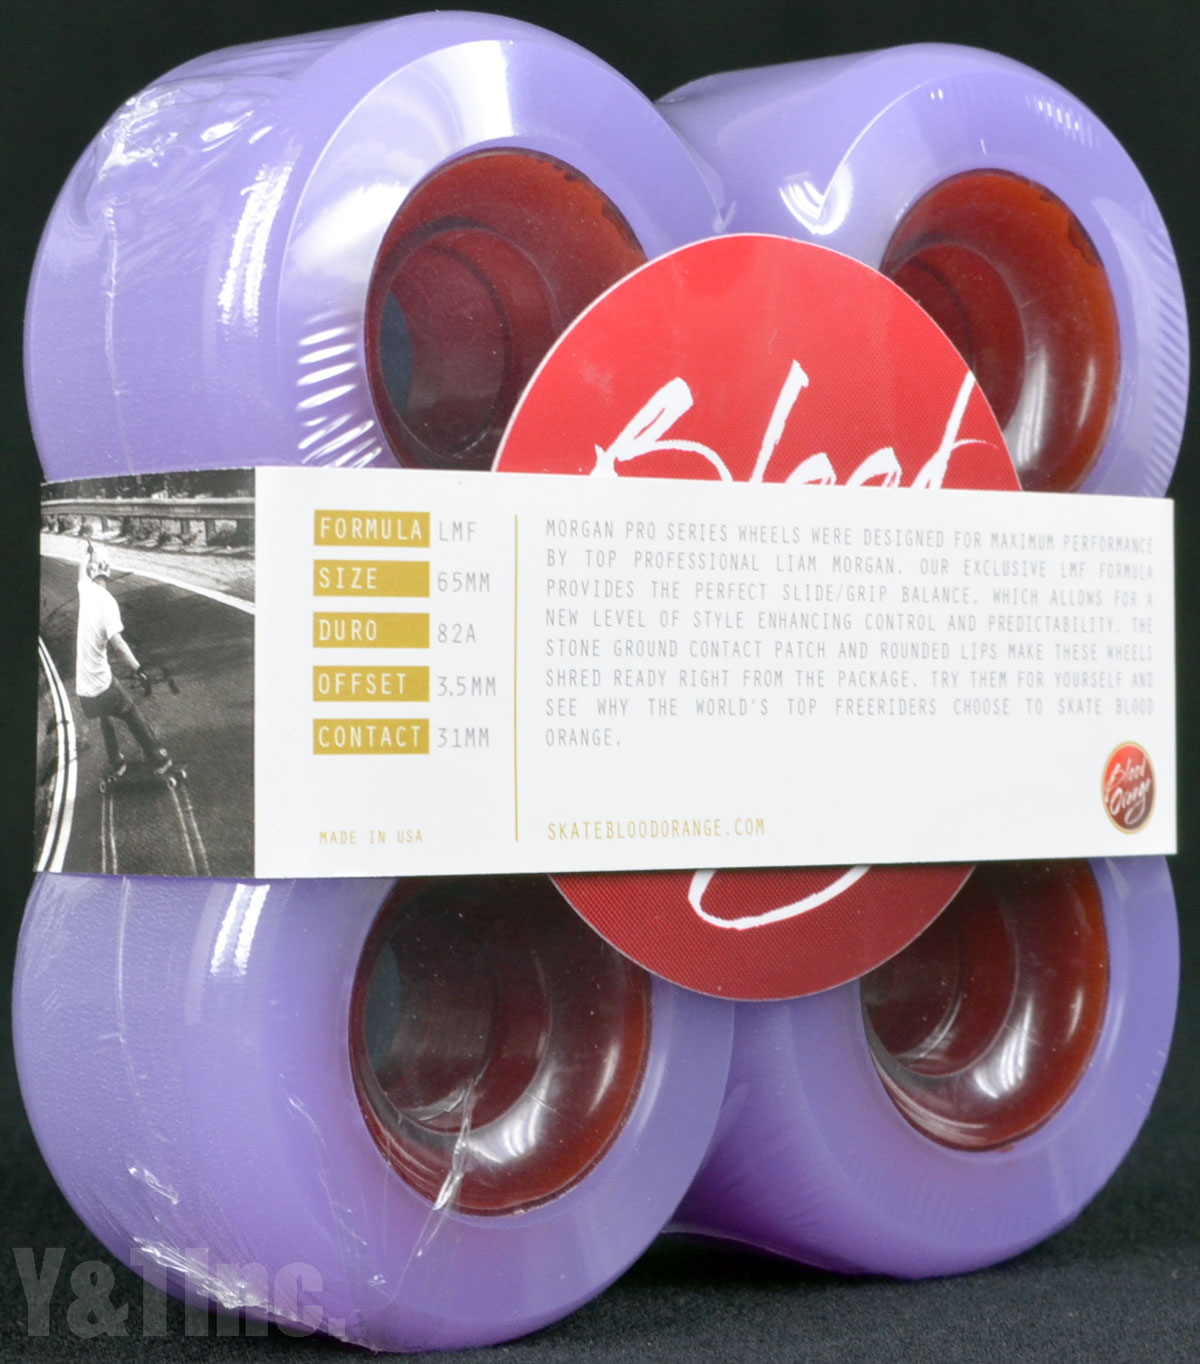 BLOOD ORANGE MORGAN 65mm 82a LAVENDER 1